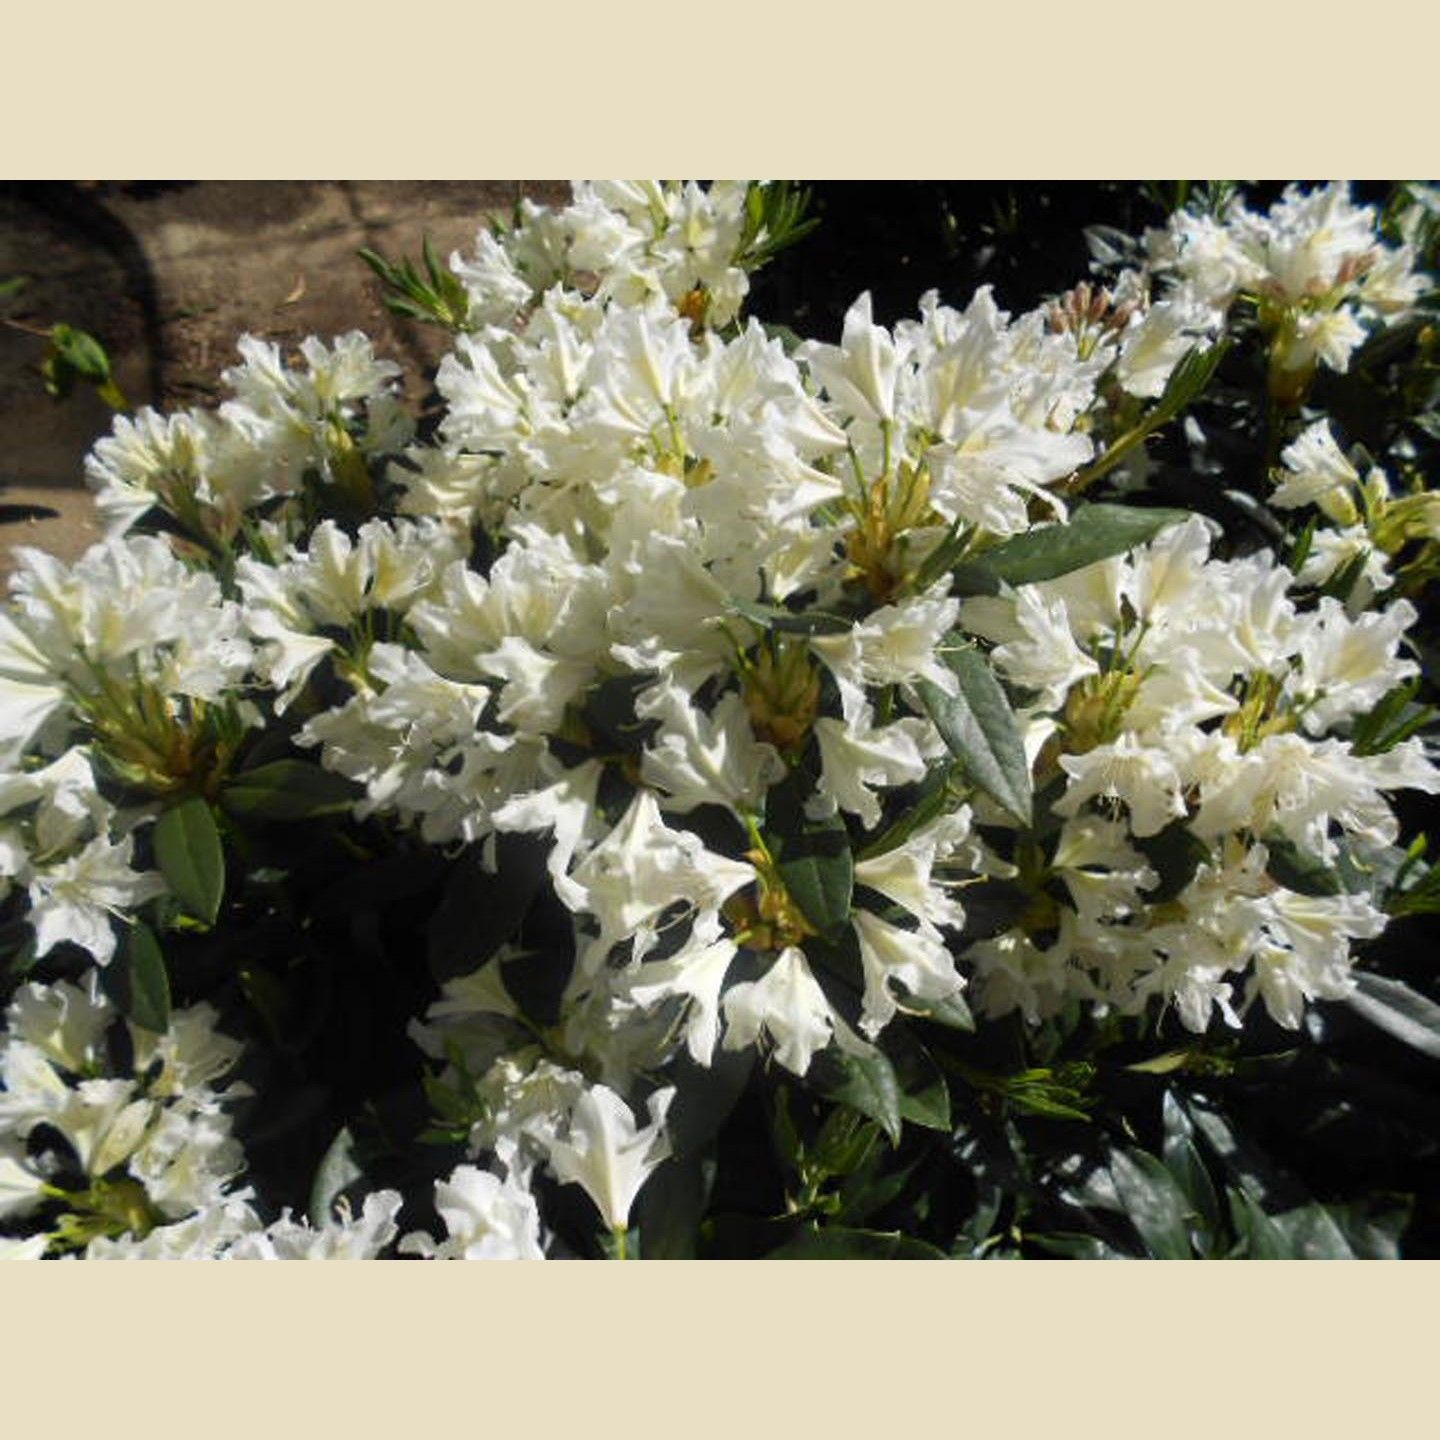 Rhododendron White - Deer Resistant - Screen - Boething Treeland Farms